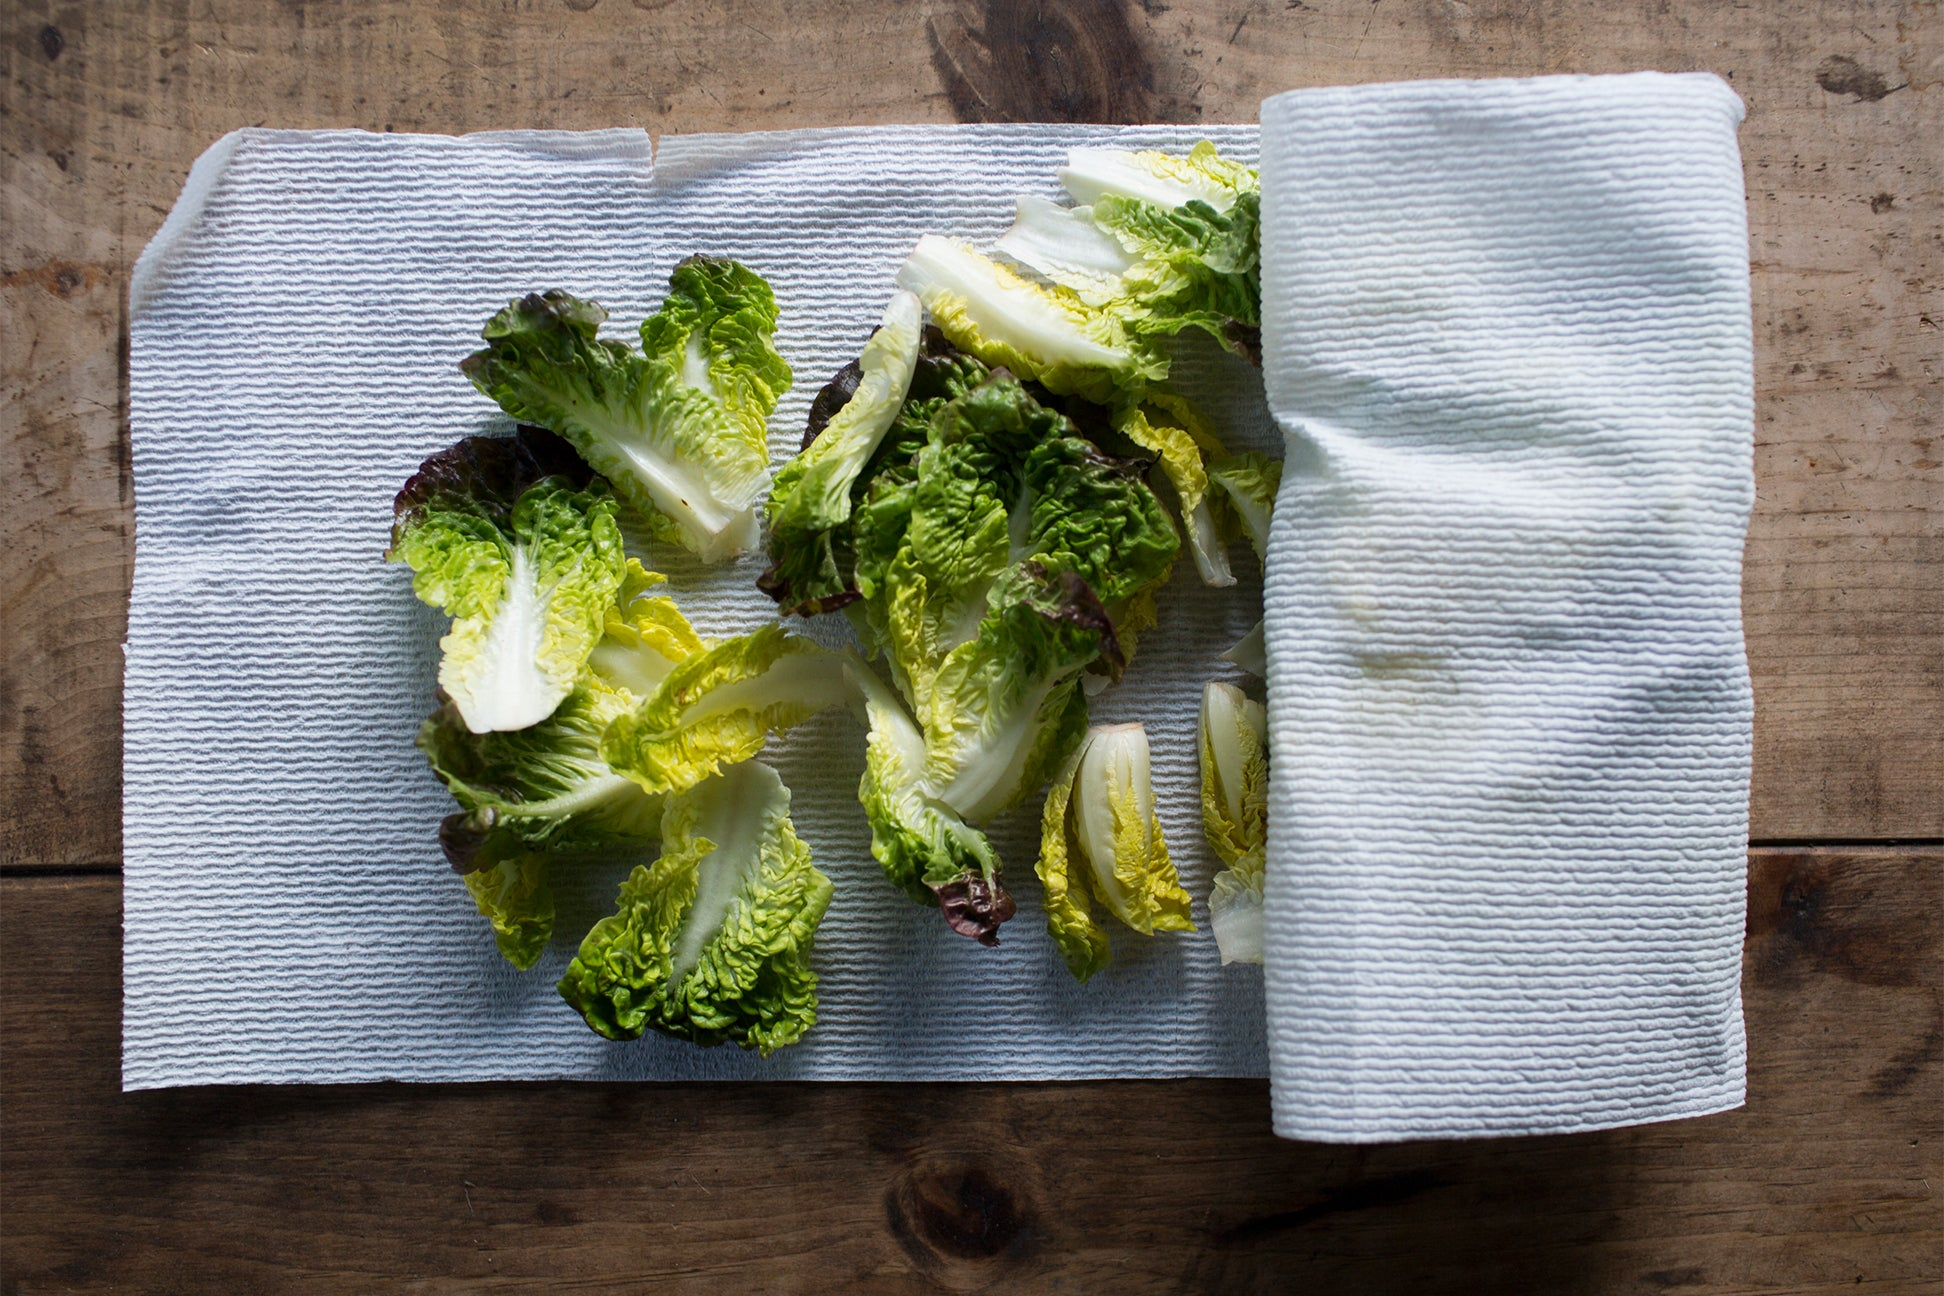 Lettuce on paper towels